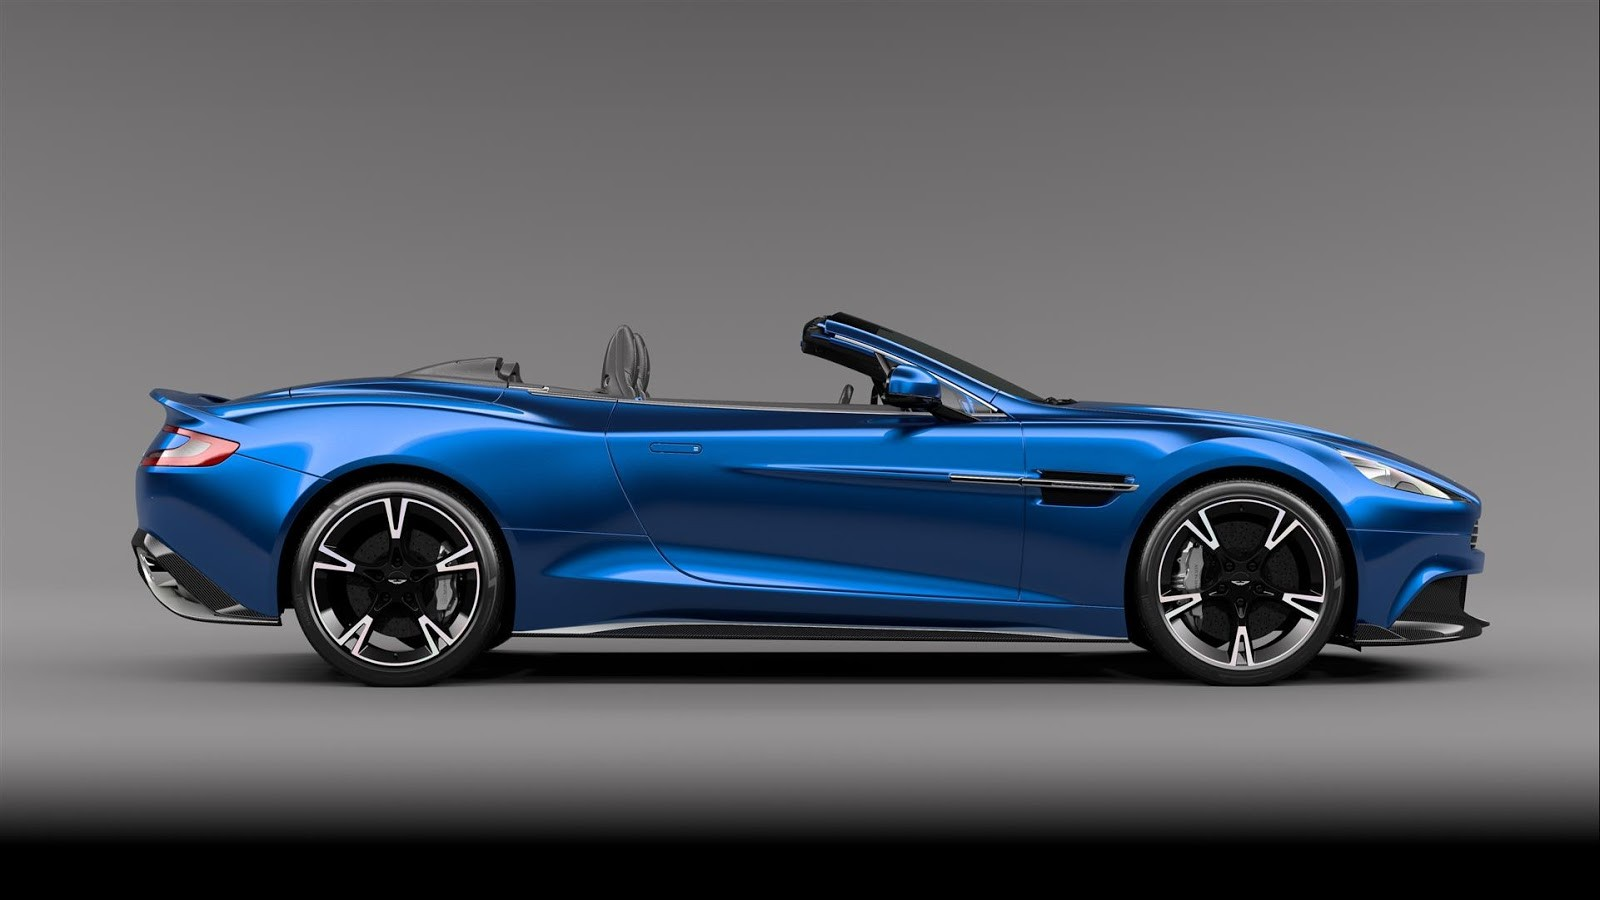 2017 aston martin vanquish s volante gets updated 600 hp. Black Bedroom Furniture Sets. Home Design Ideas